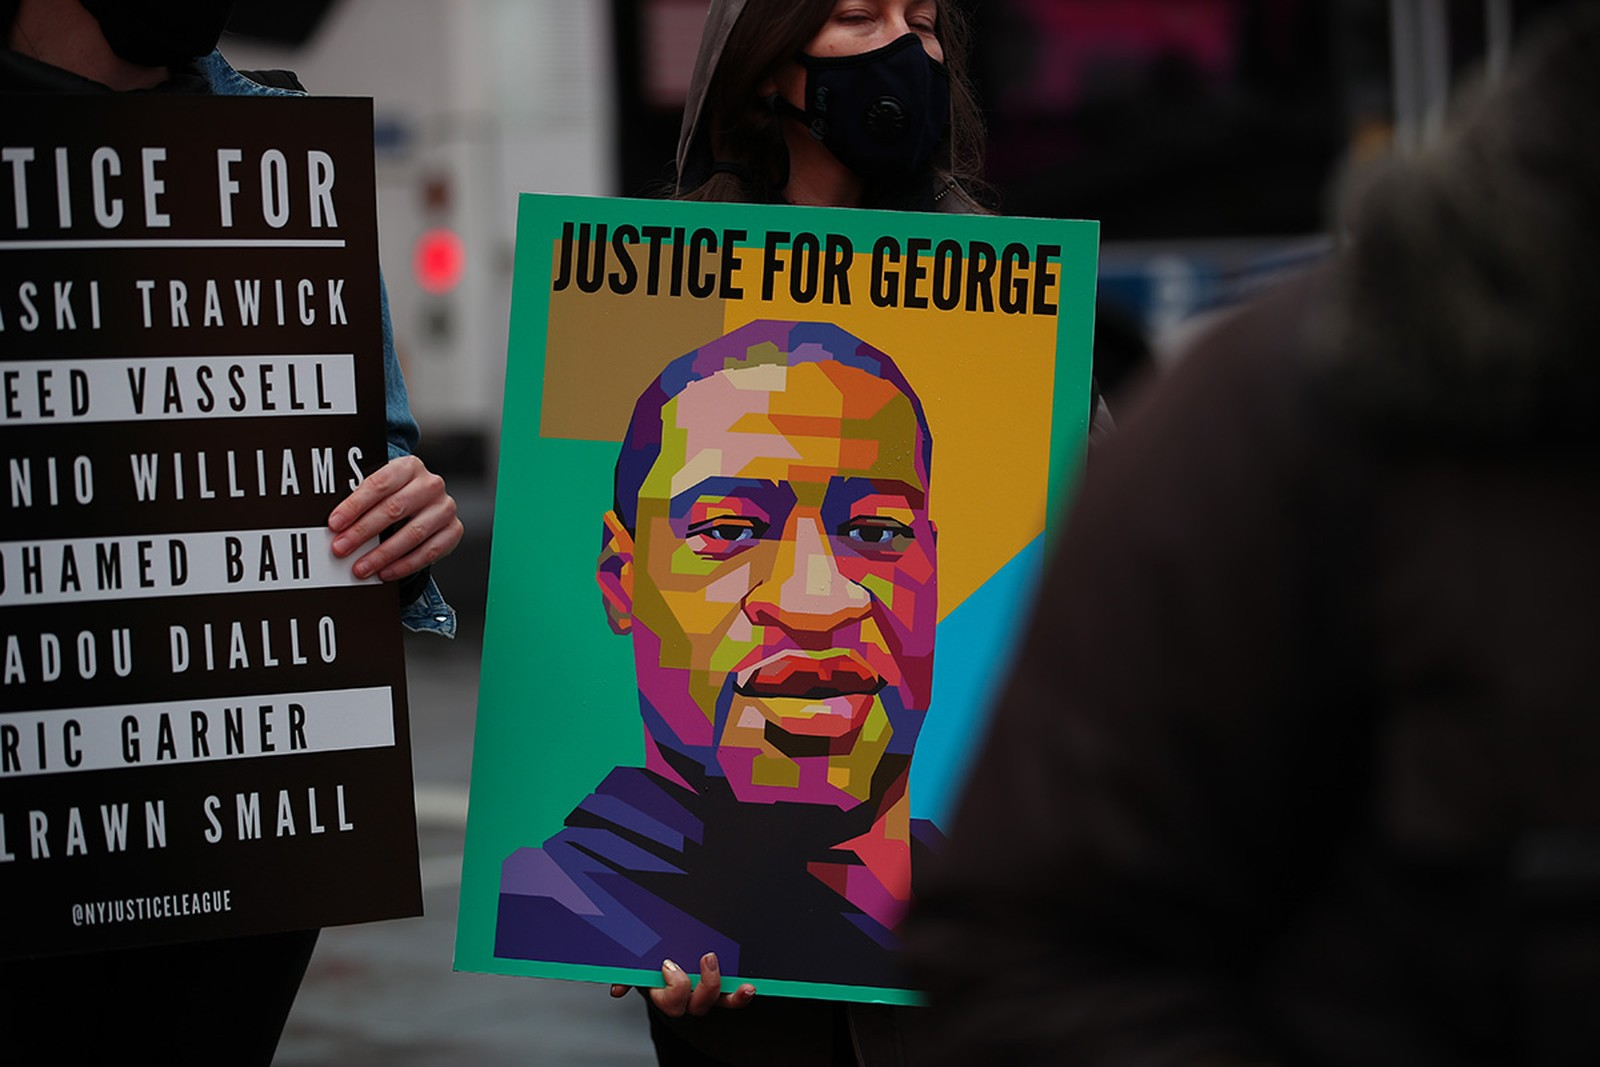 Black Lives Matter: A reflection a year on